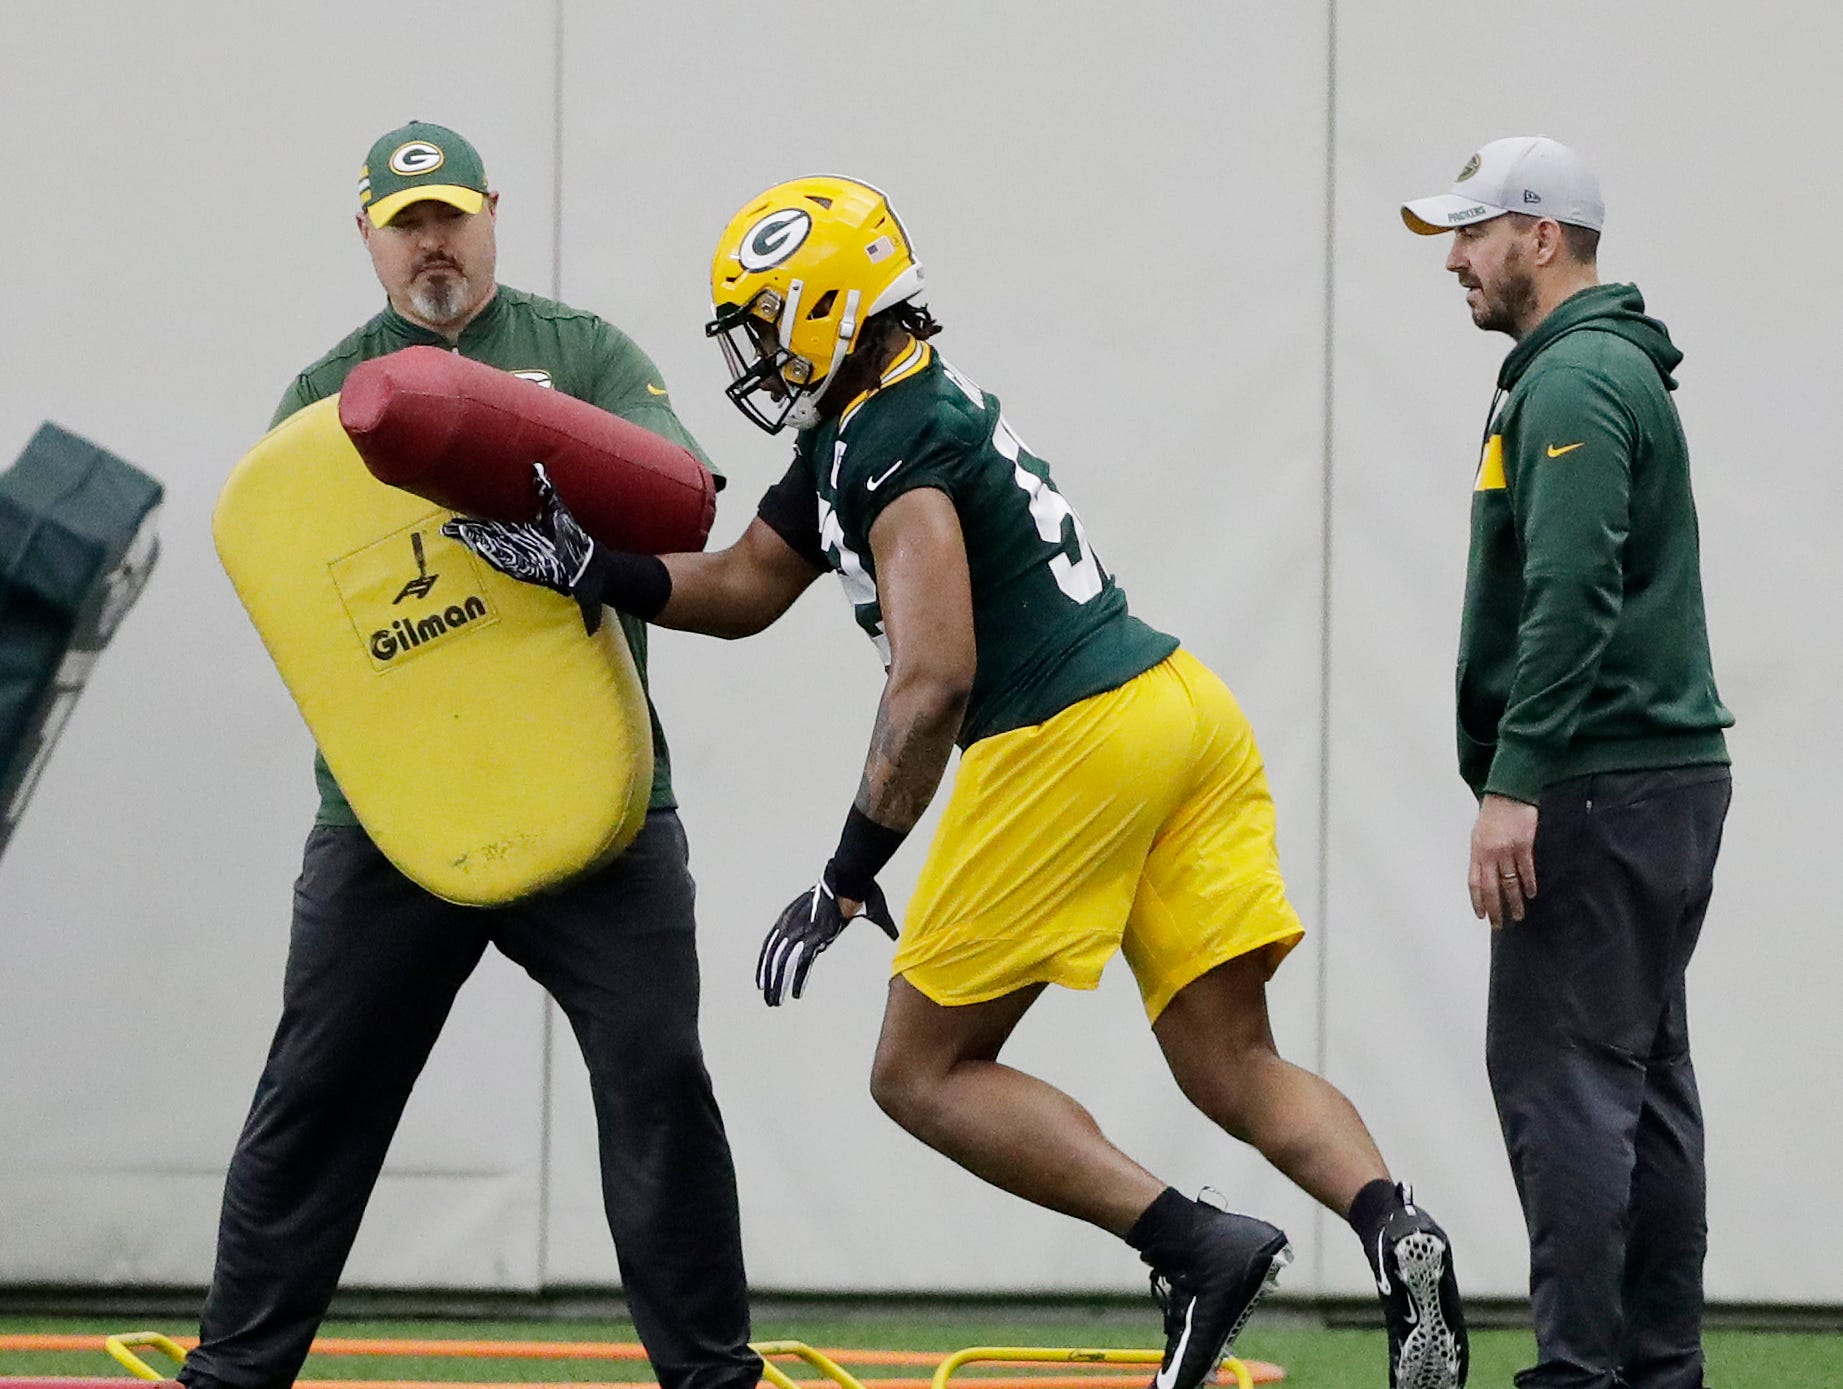 Green Bay Packers linebacker Rashan Gary (52) during practice at rookie minicamp at the Don Hutson Center on Friday, May 3, 2019 in Ashwaubenon, Wis.Adam Wesley/USA TODAY NETWORK-Wis